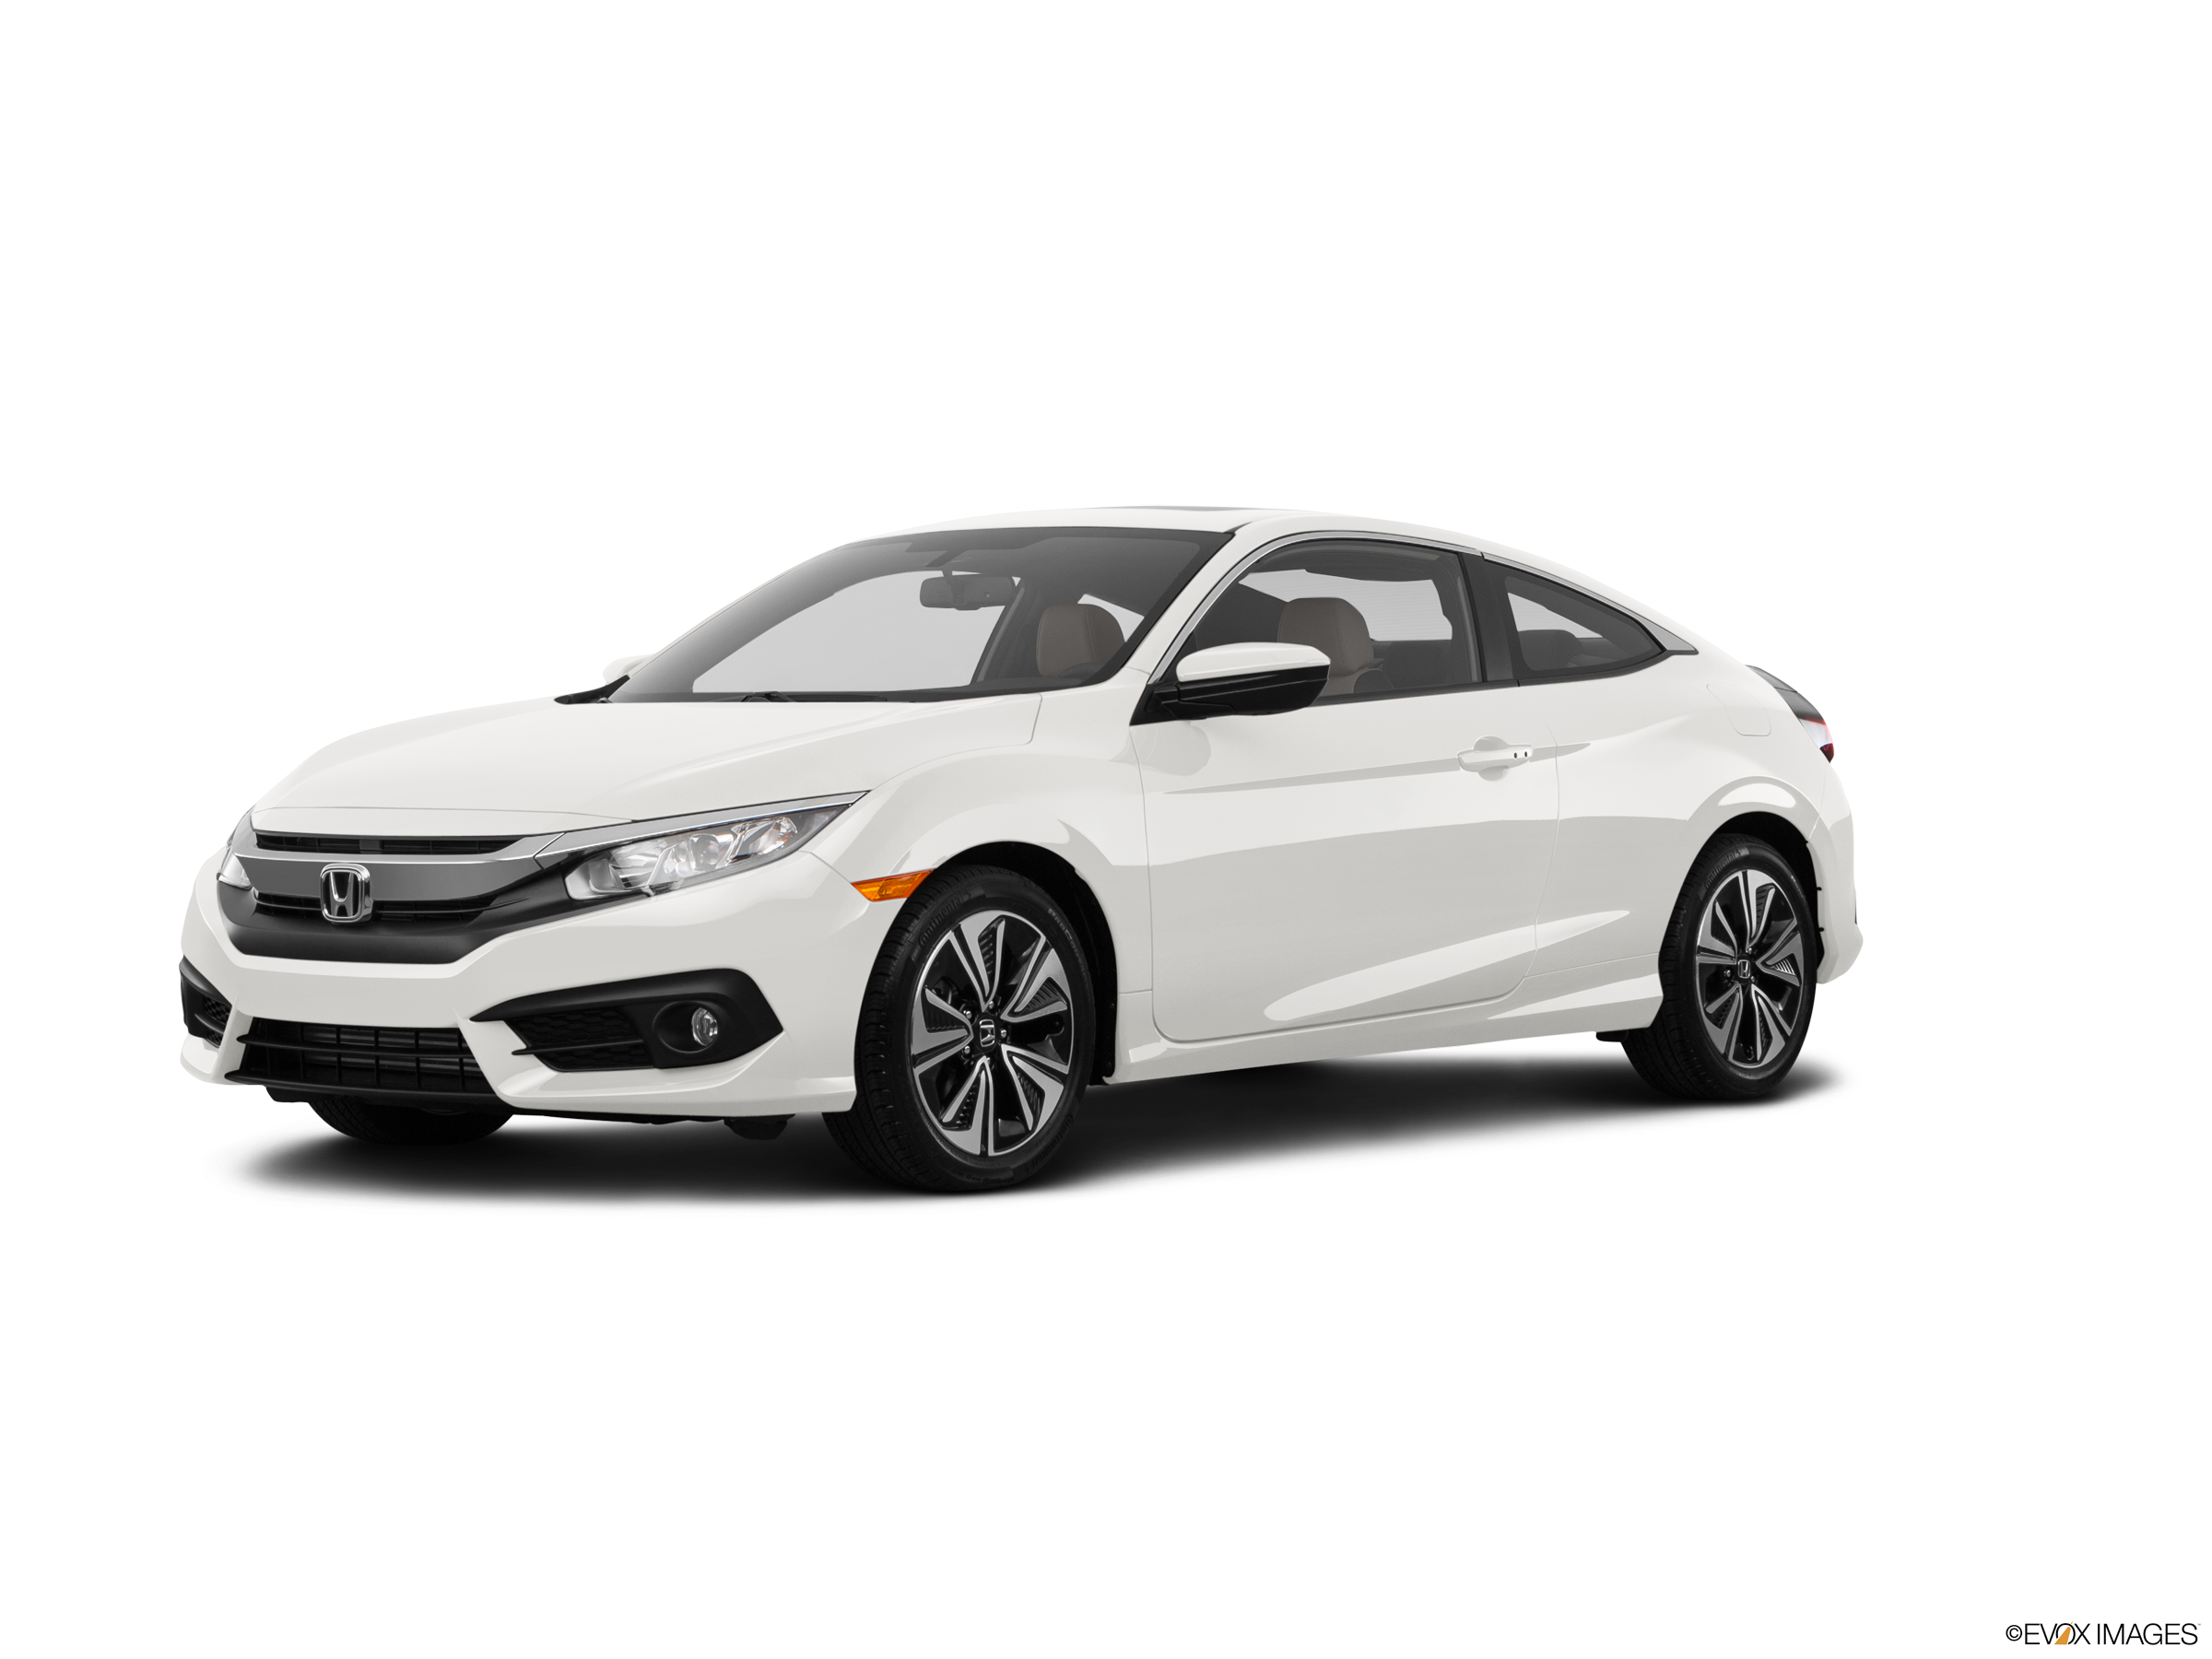 Top Expert Rated Coupes of 2017 - 2017 Honda Civic